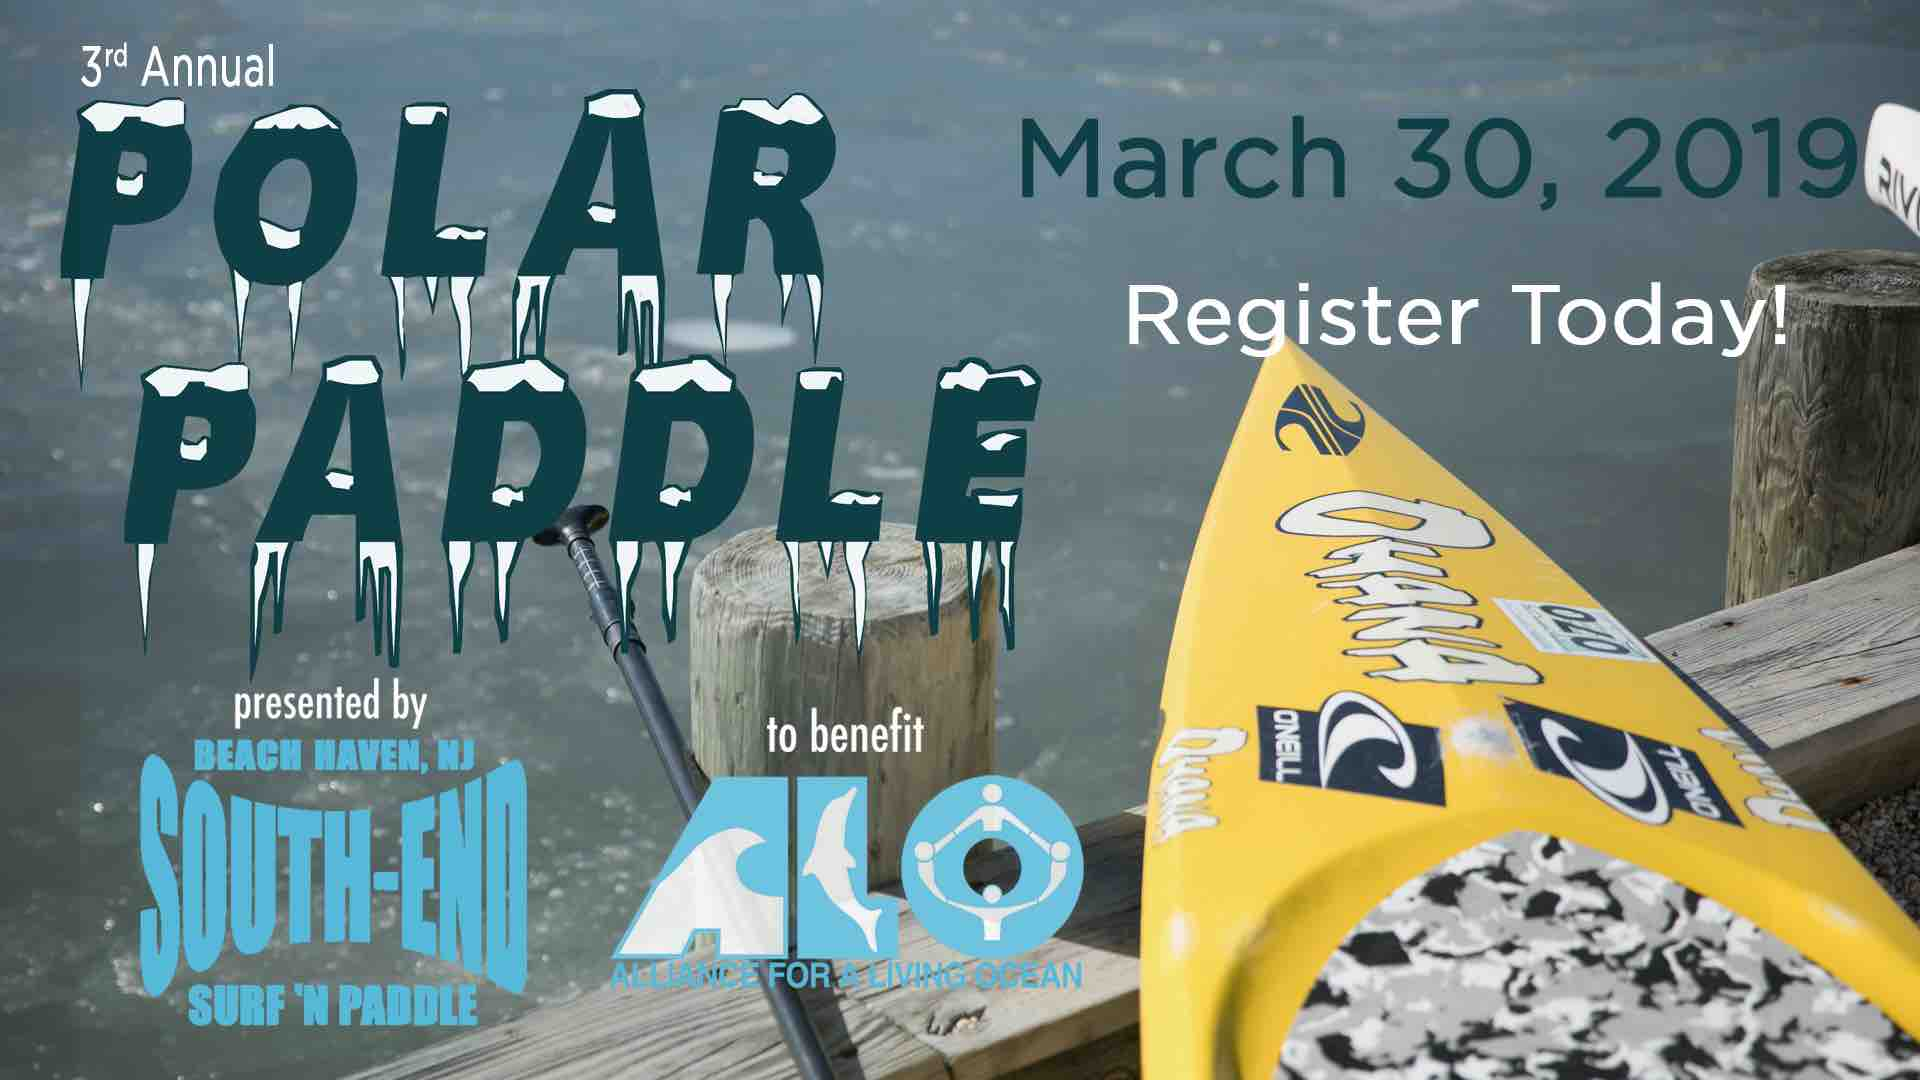 1c33821a9 Polar Paddle - South End Surf N Paddle and ALO 2019